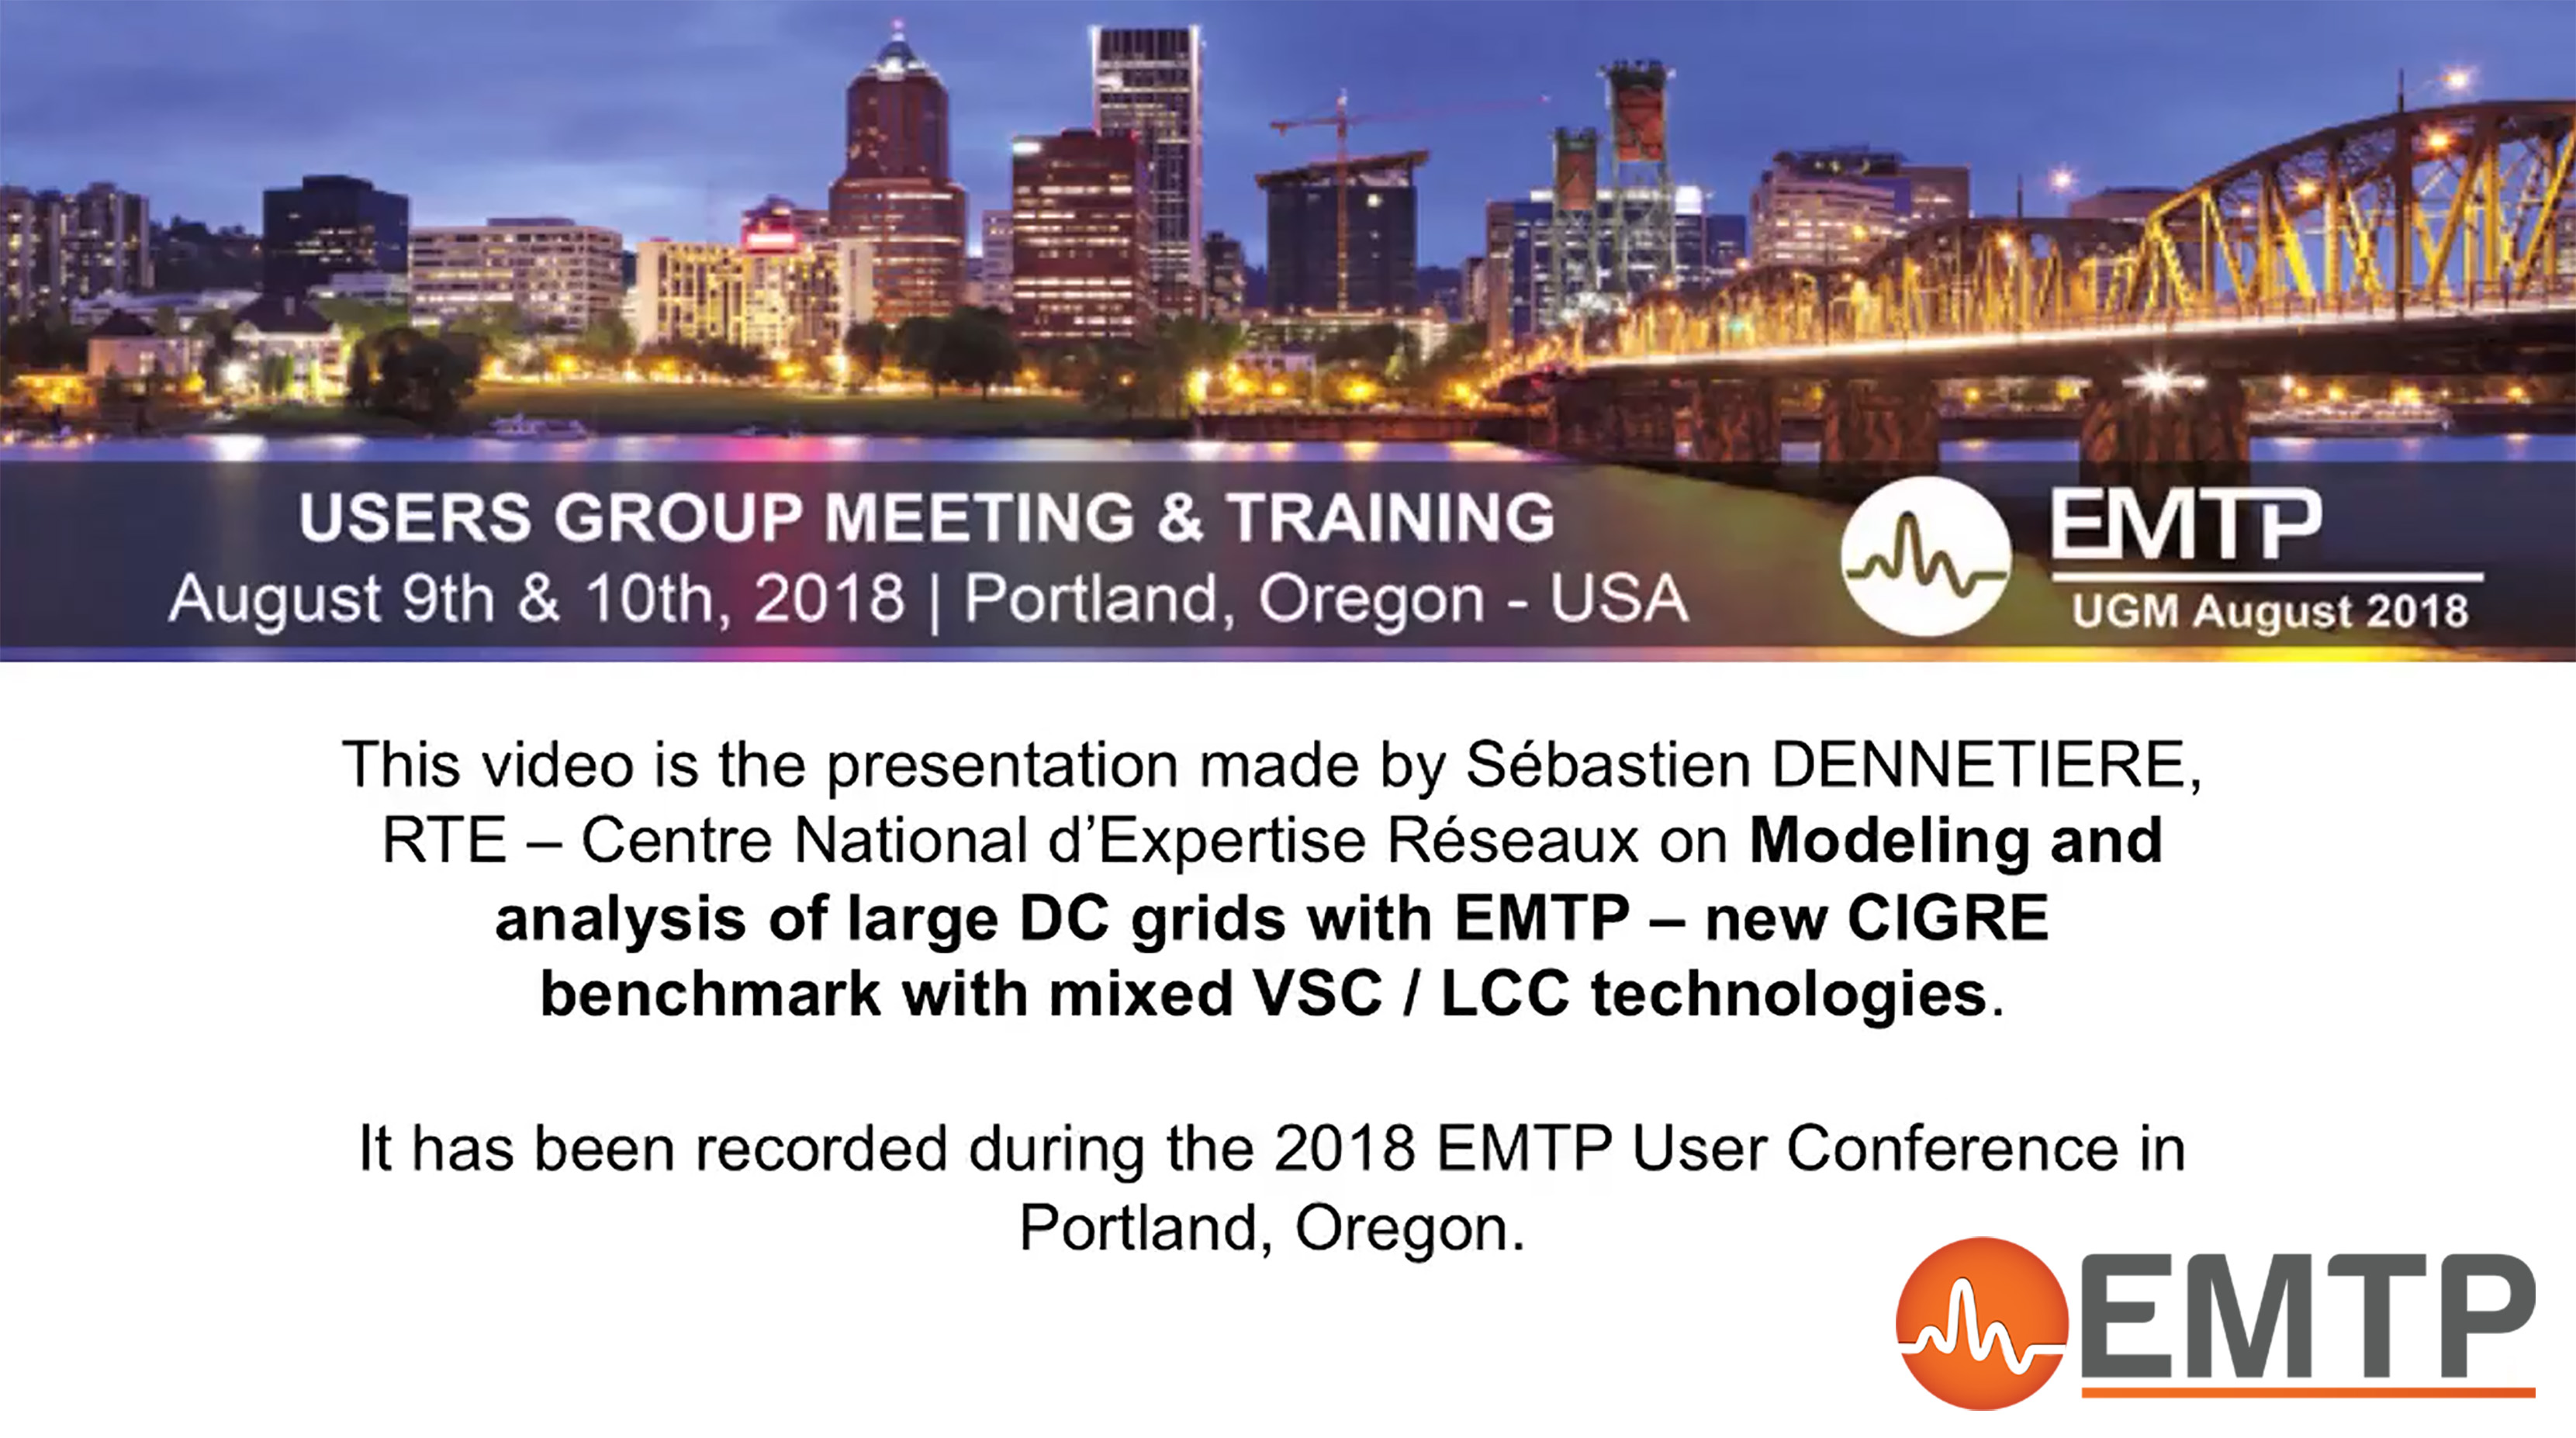 Modeling and analysis of large dc grids with emtp – new cigre benchmark with mixed vsc / lcc technologies